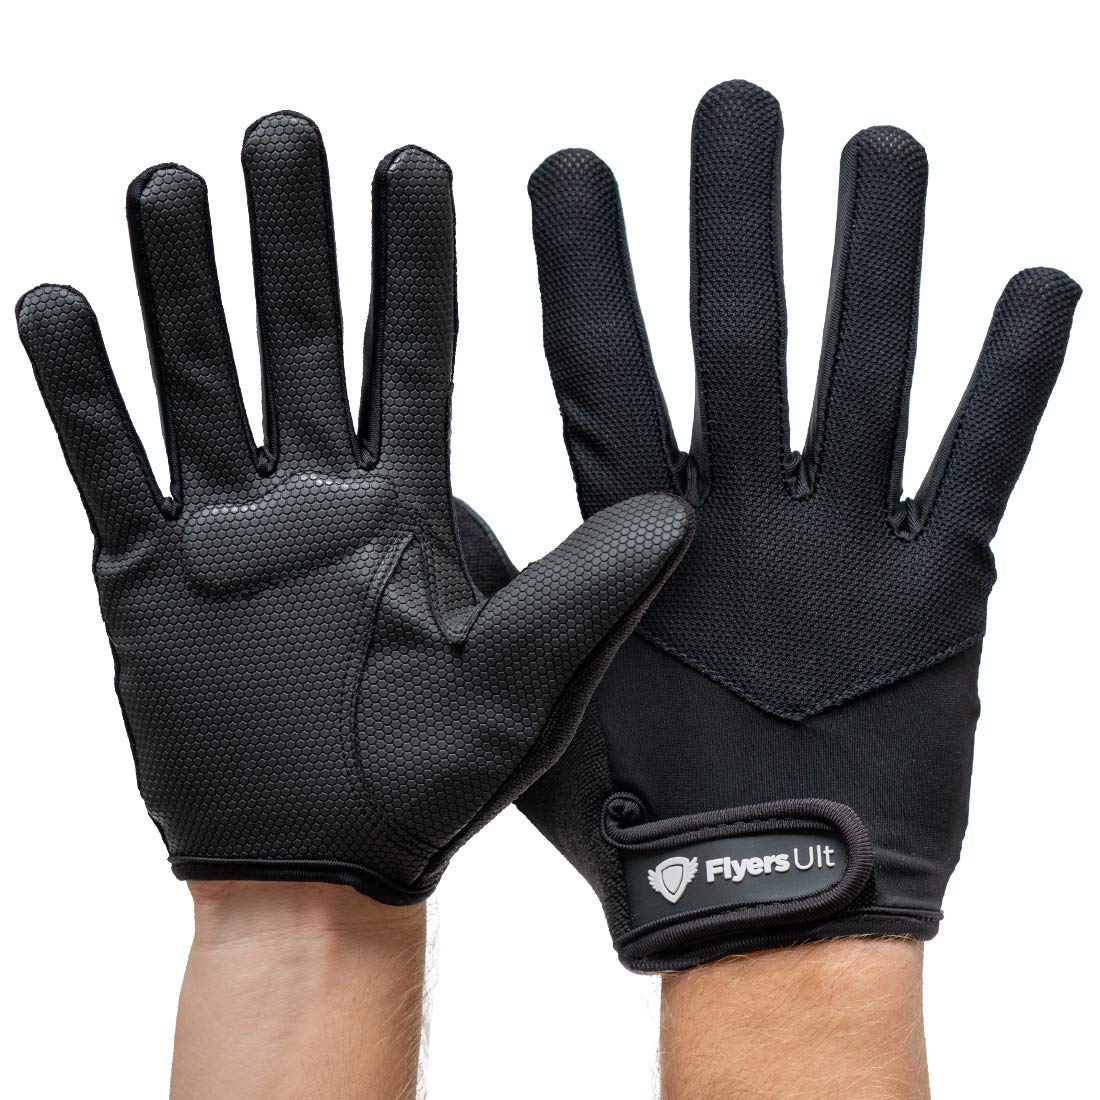 Flyers Ult Pentaero Ultimate Frisbee Gloves (Medium) by Flyers Ult